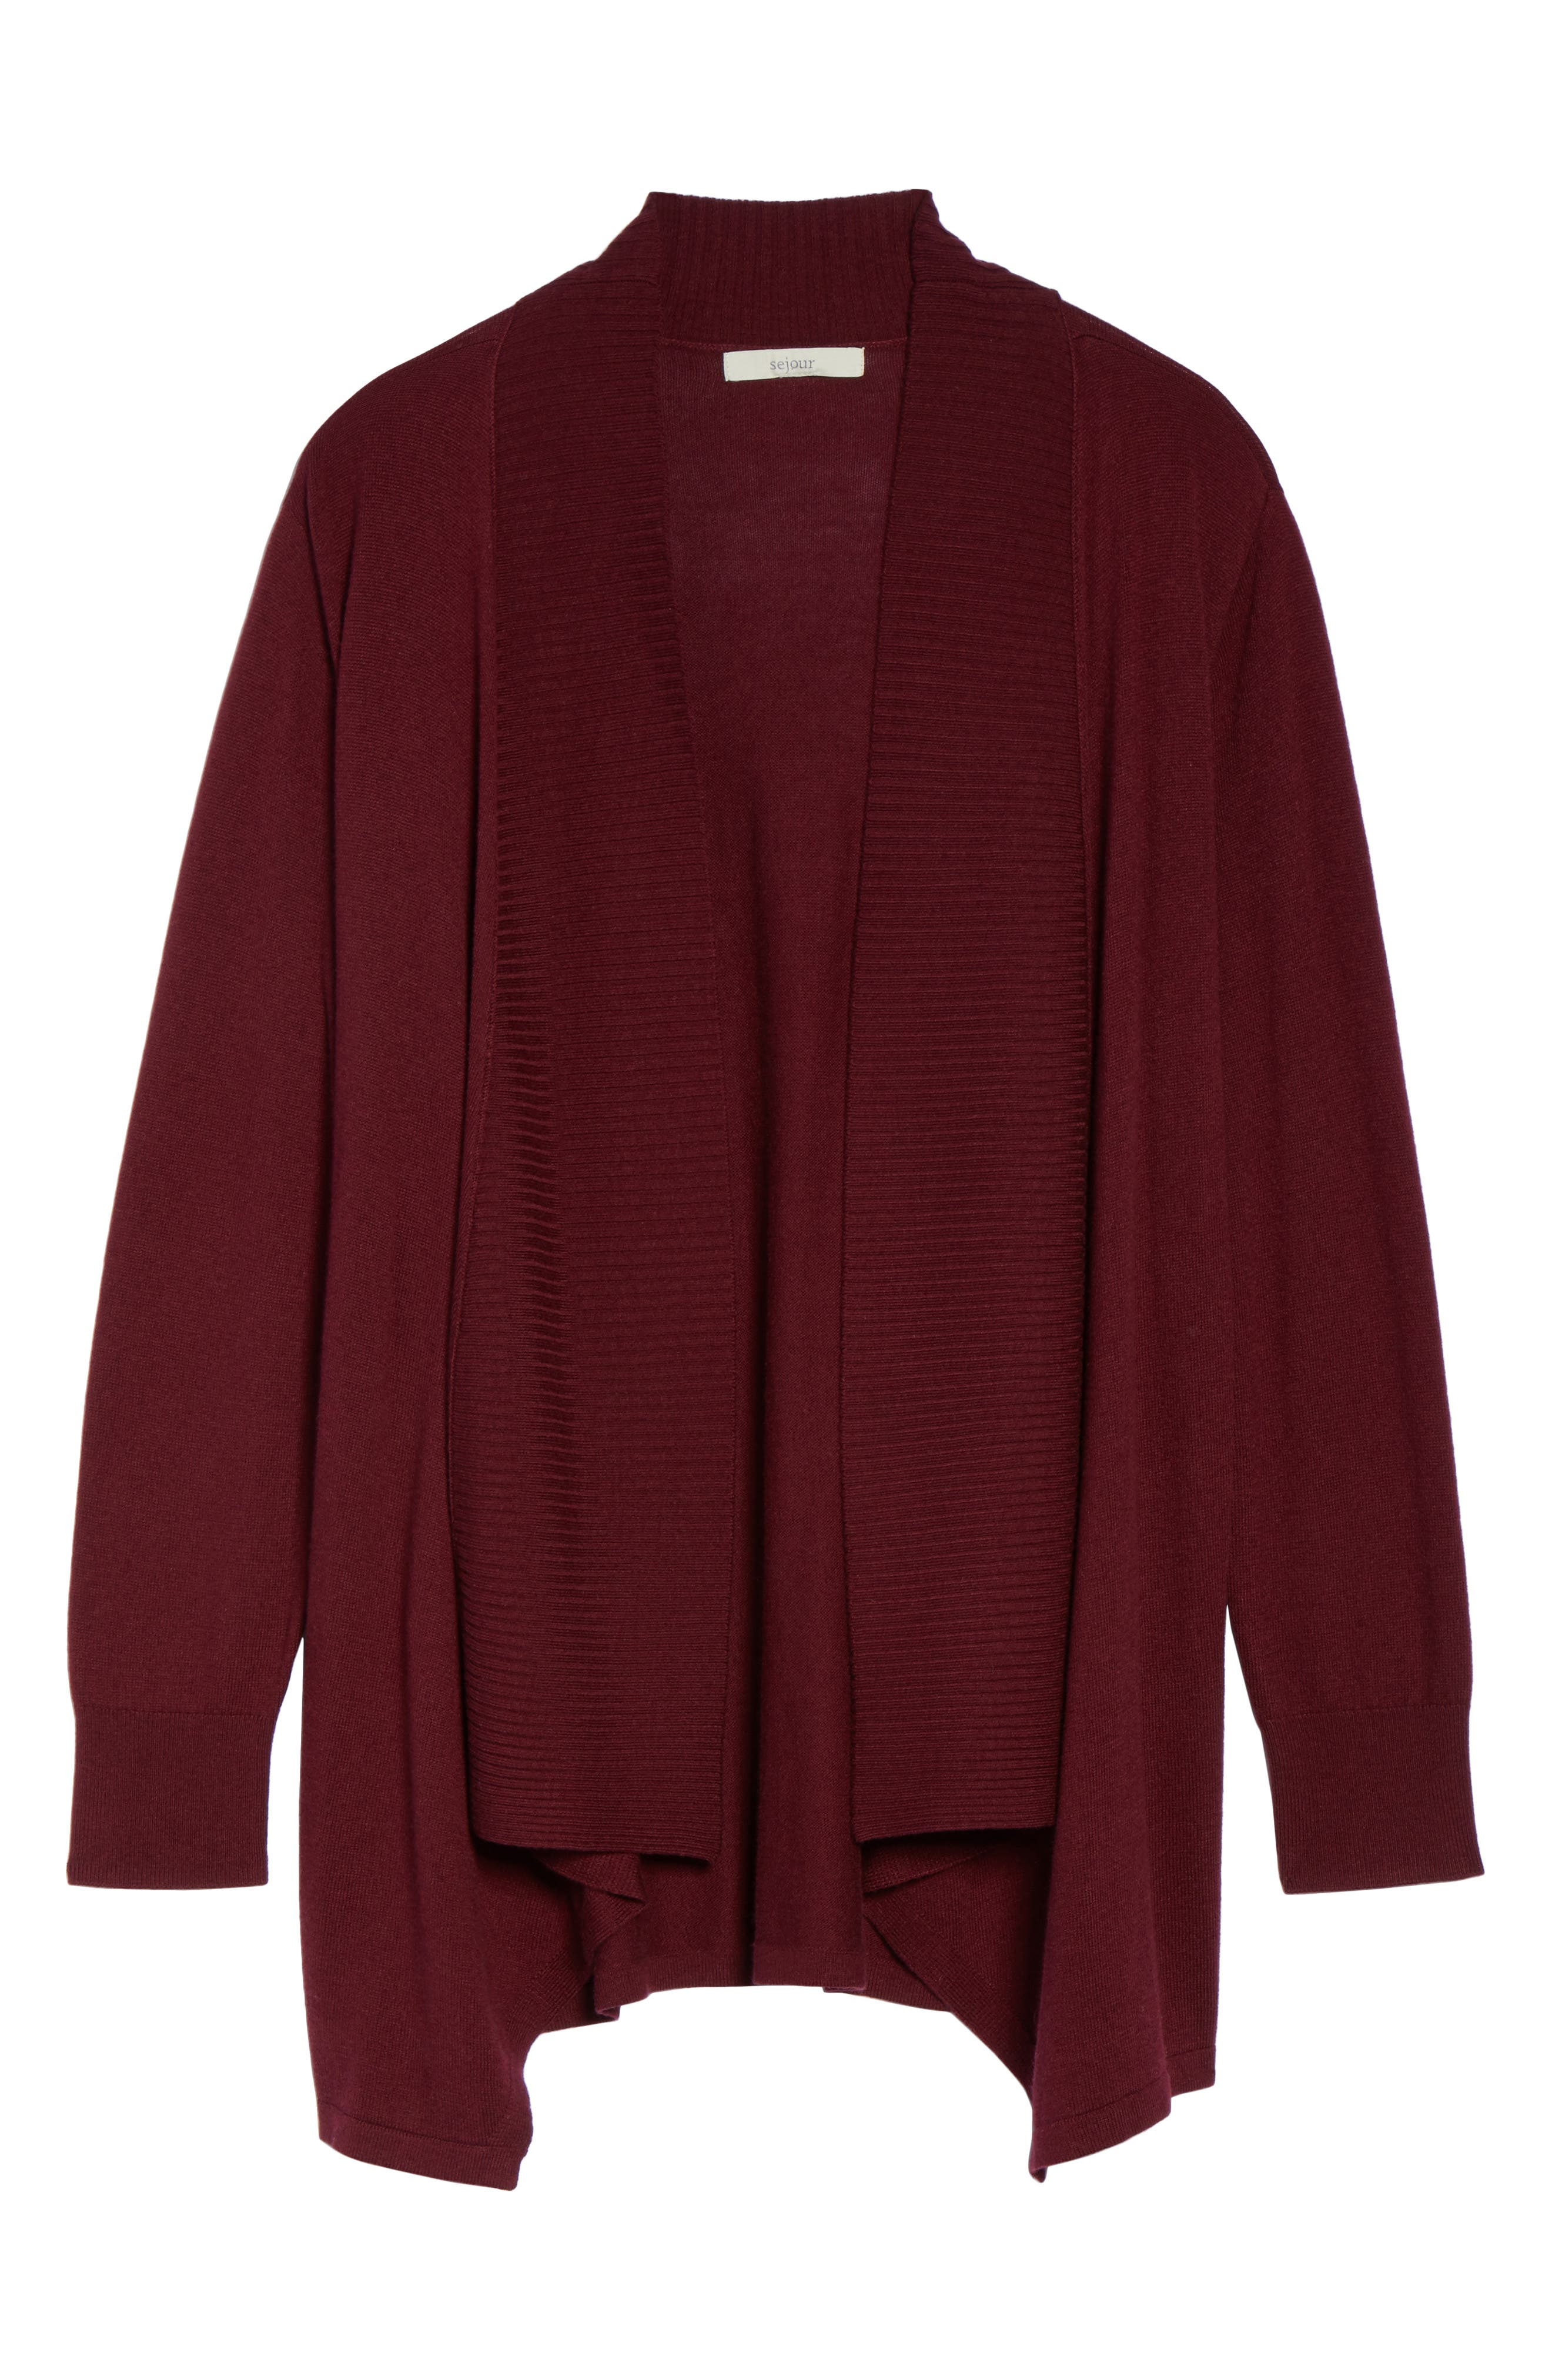 Cascade Open Front Cardigan,                             Alternate thumbnail 6, color,                             Red Tannin